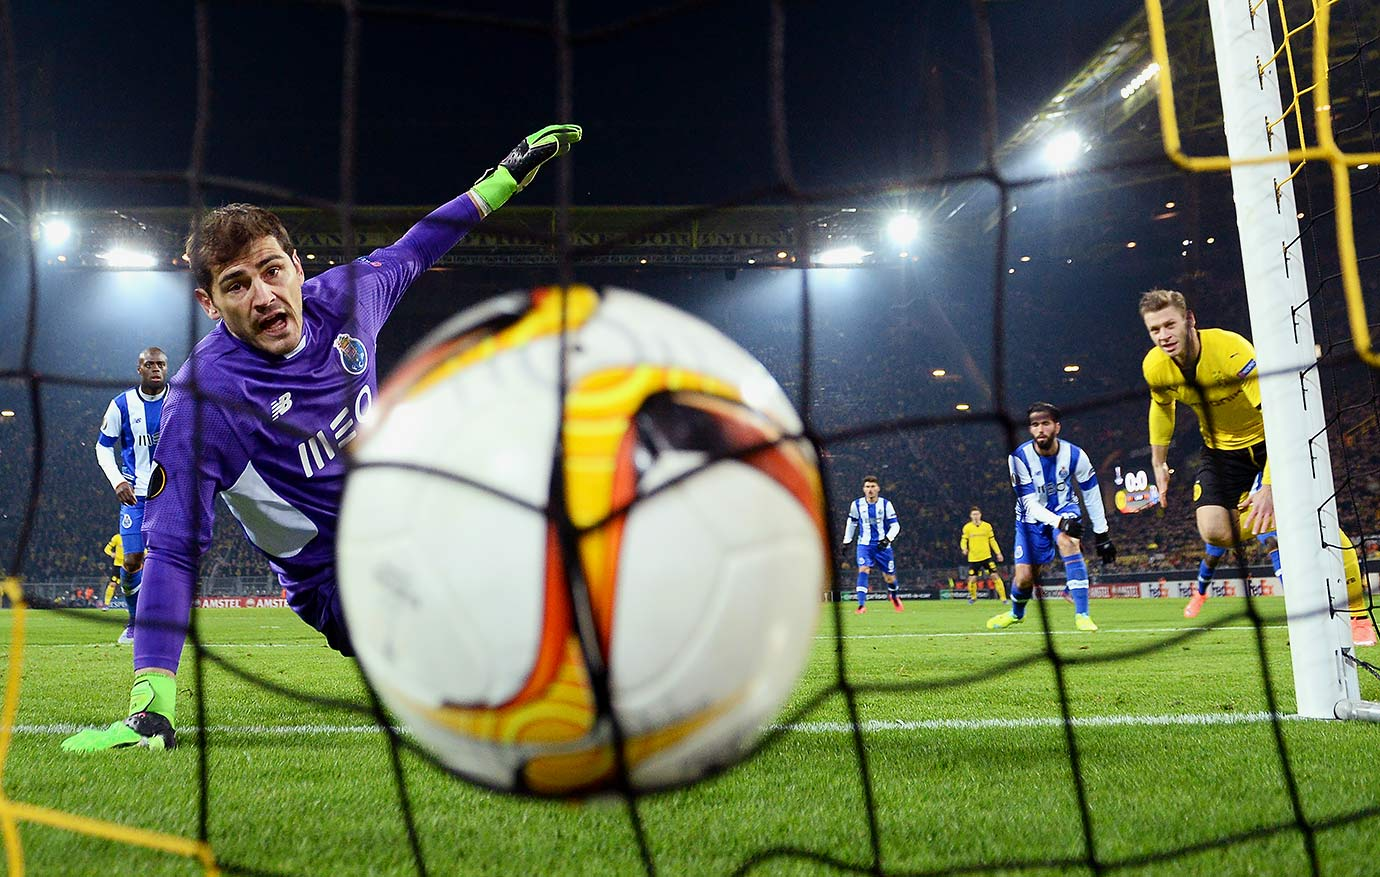 FC Porto's Iker Casillas watches the ball at the back of the net as Borussia Dortmund's Lukasz Piszczek (right) heads the ball to score his team's first goal during the UEFA Europa League round of 32 first leg match in Dortmund, Germany.